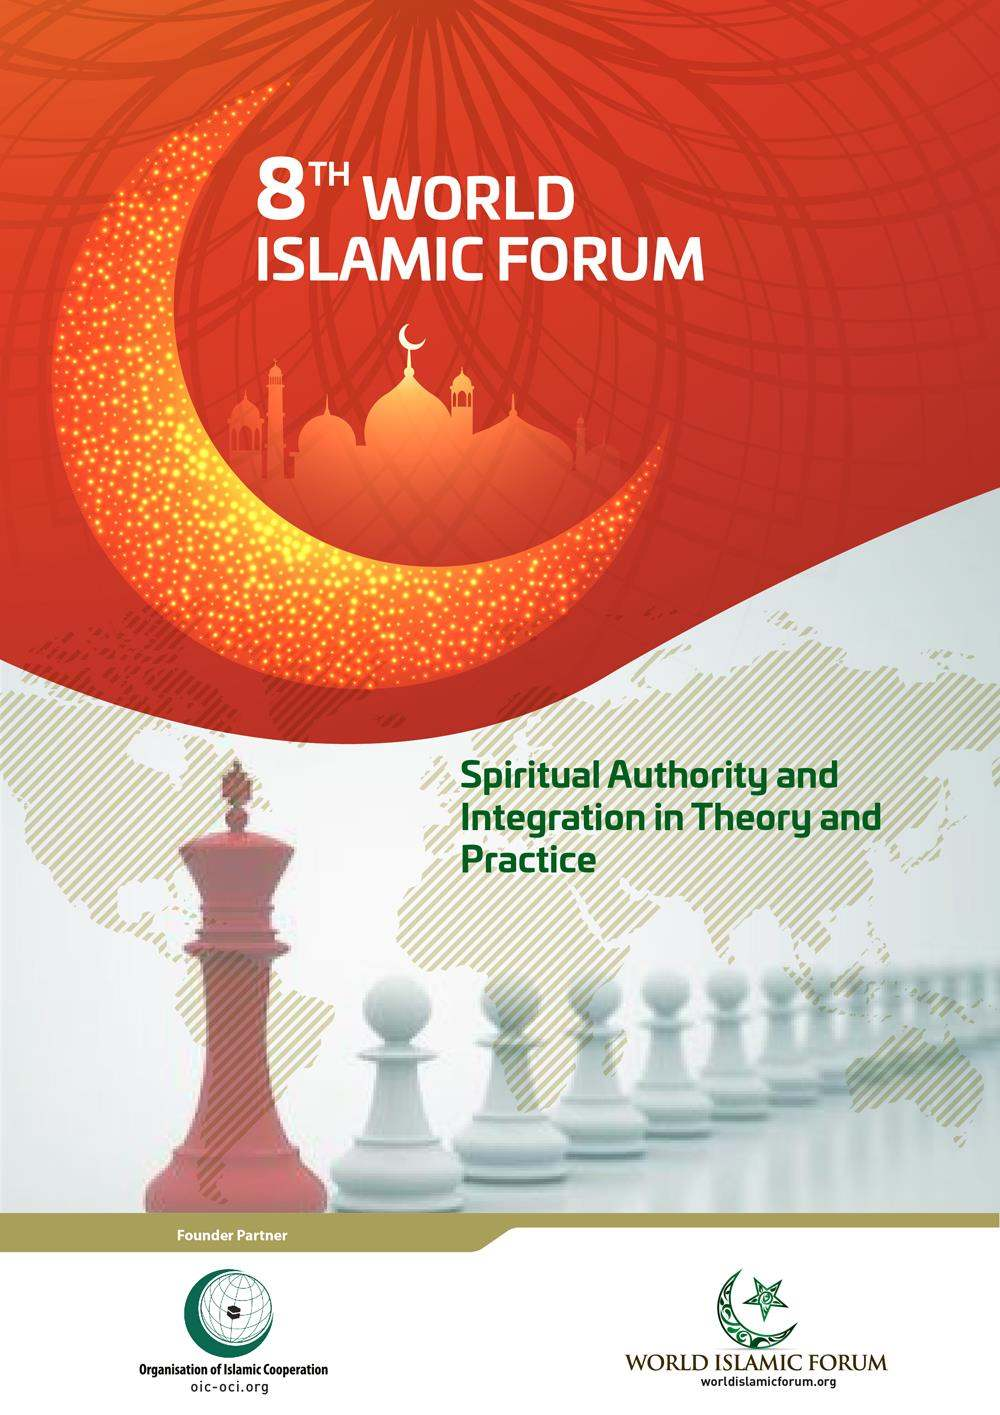 8th World Islamic Forum